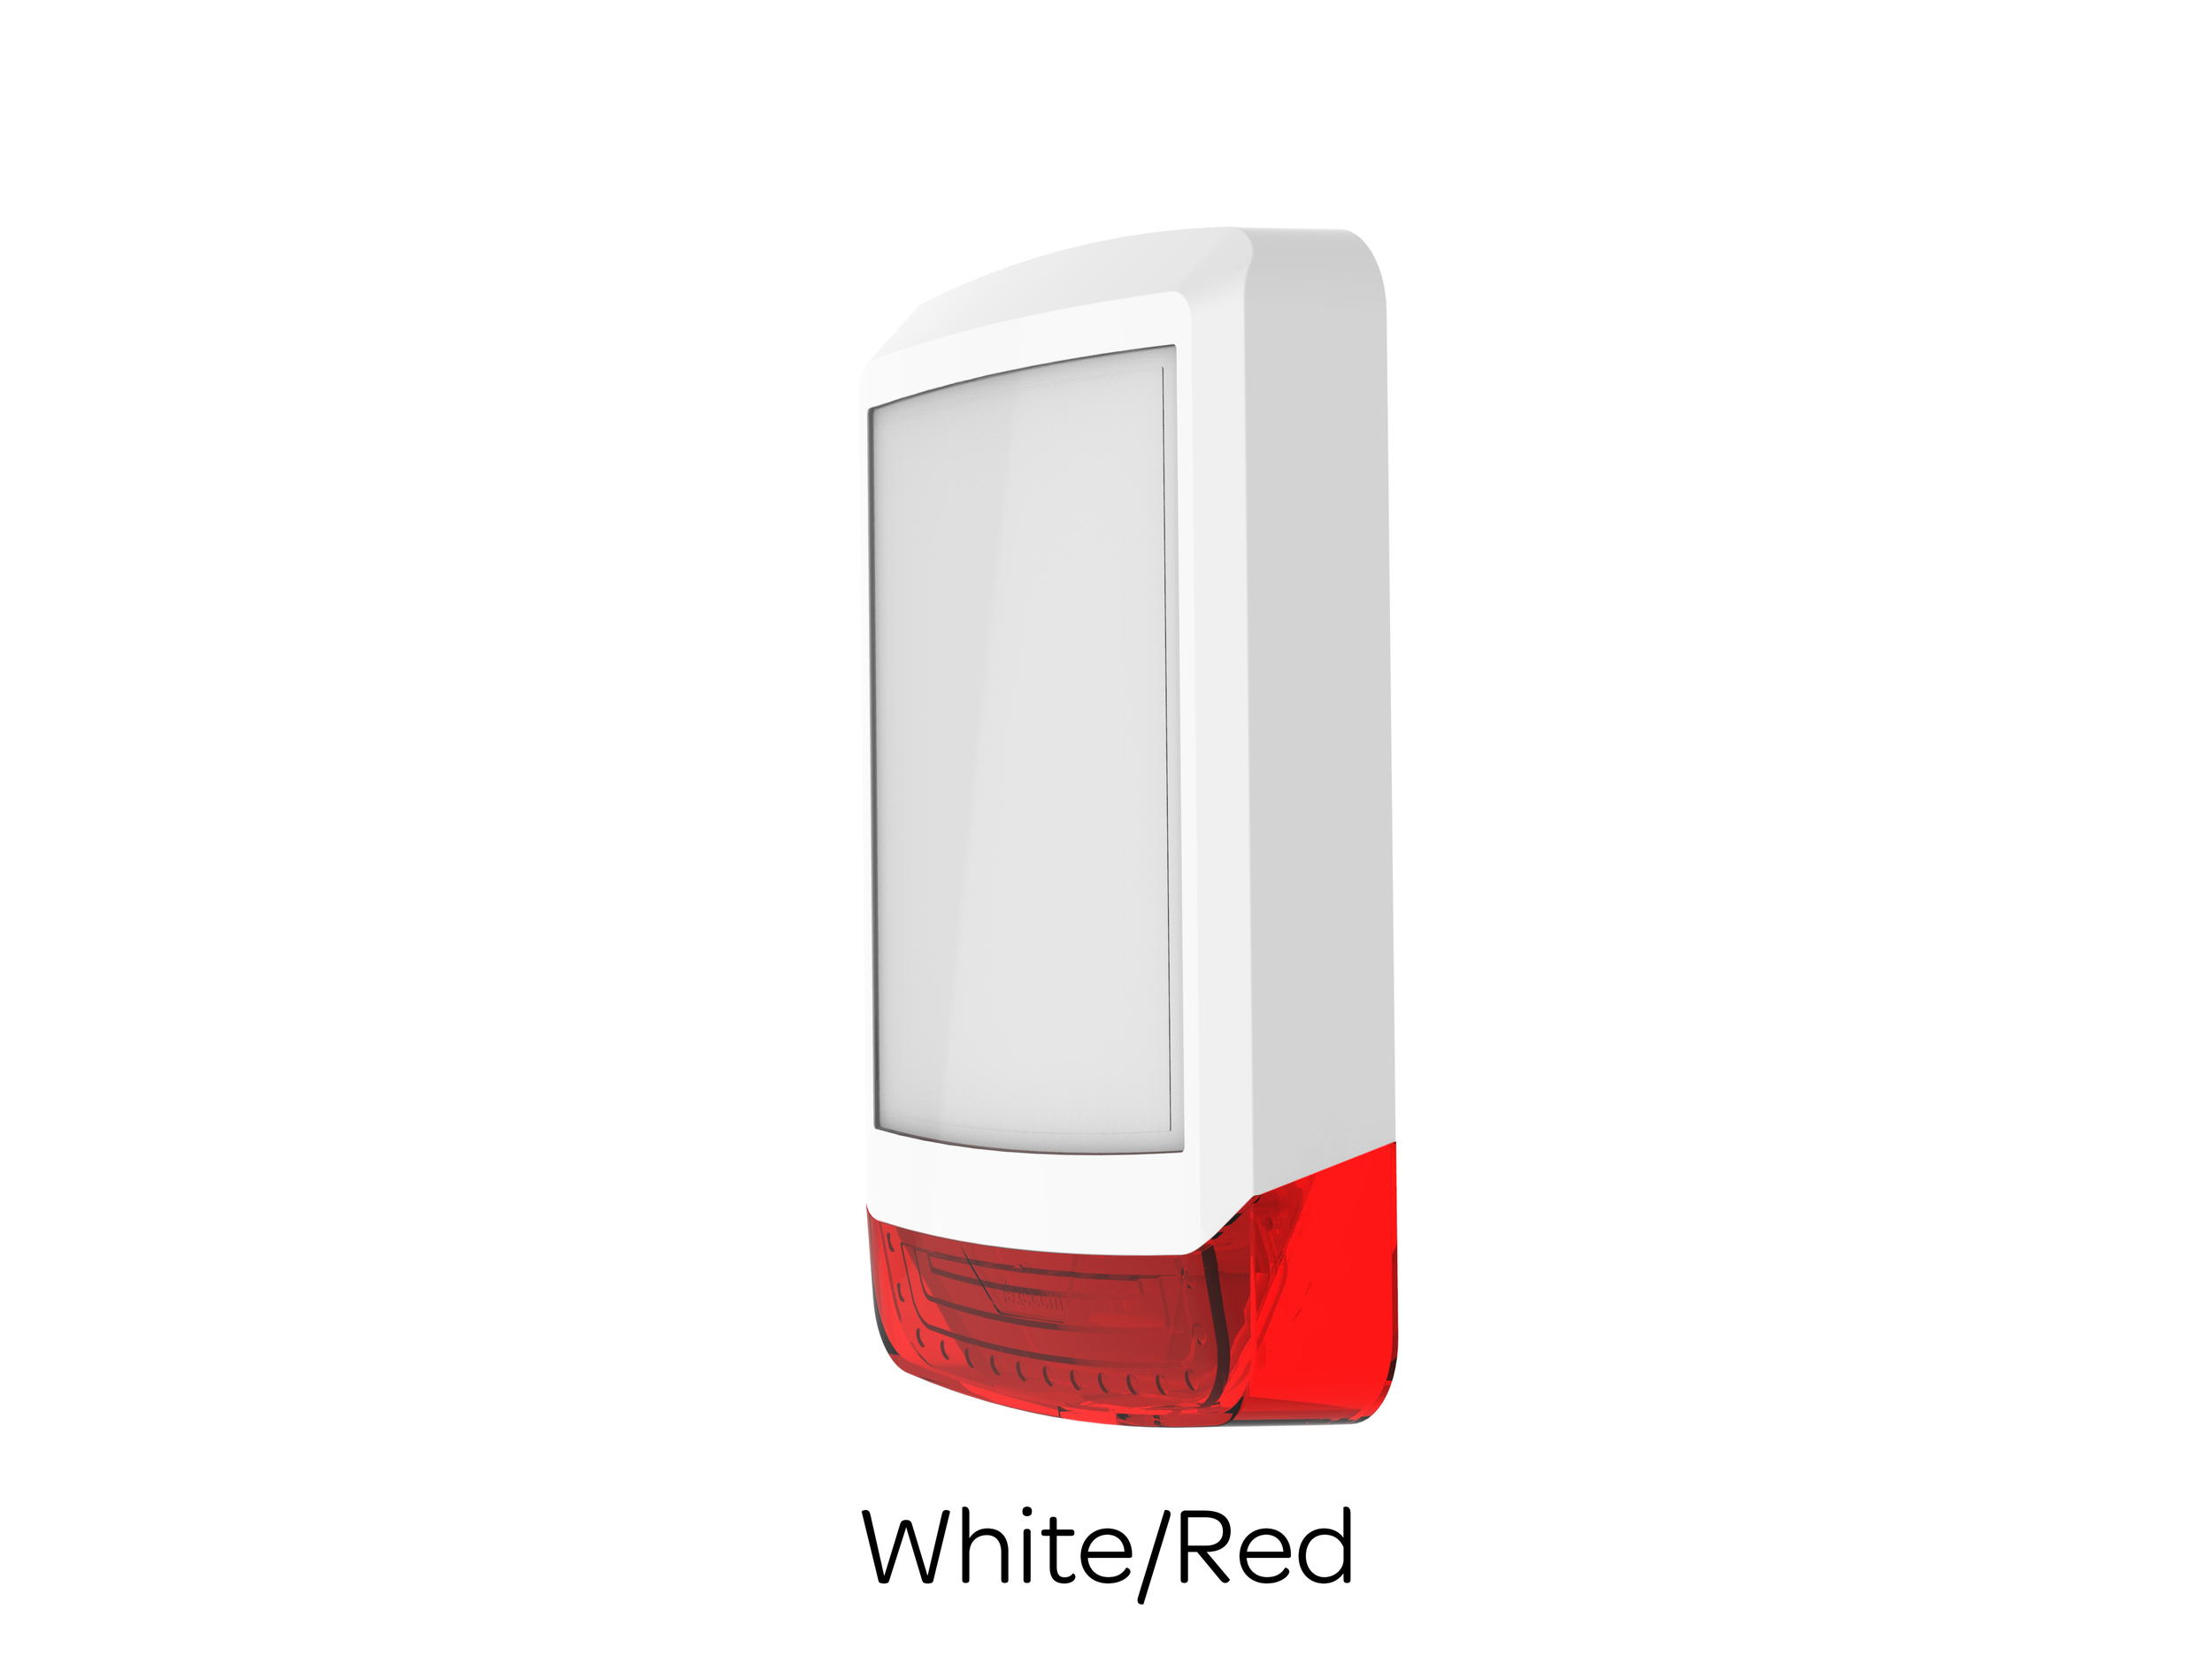 Web_OdyX1_White-Red_WhiteBG.jpg